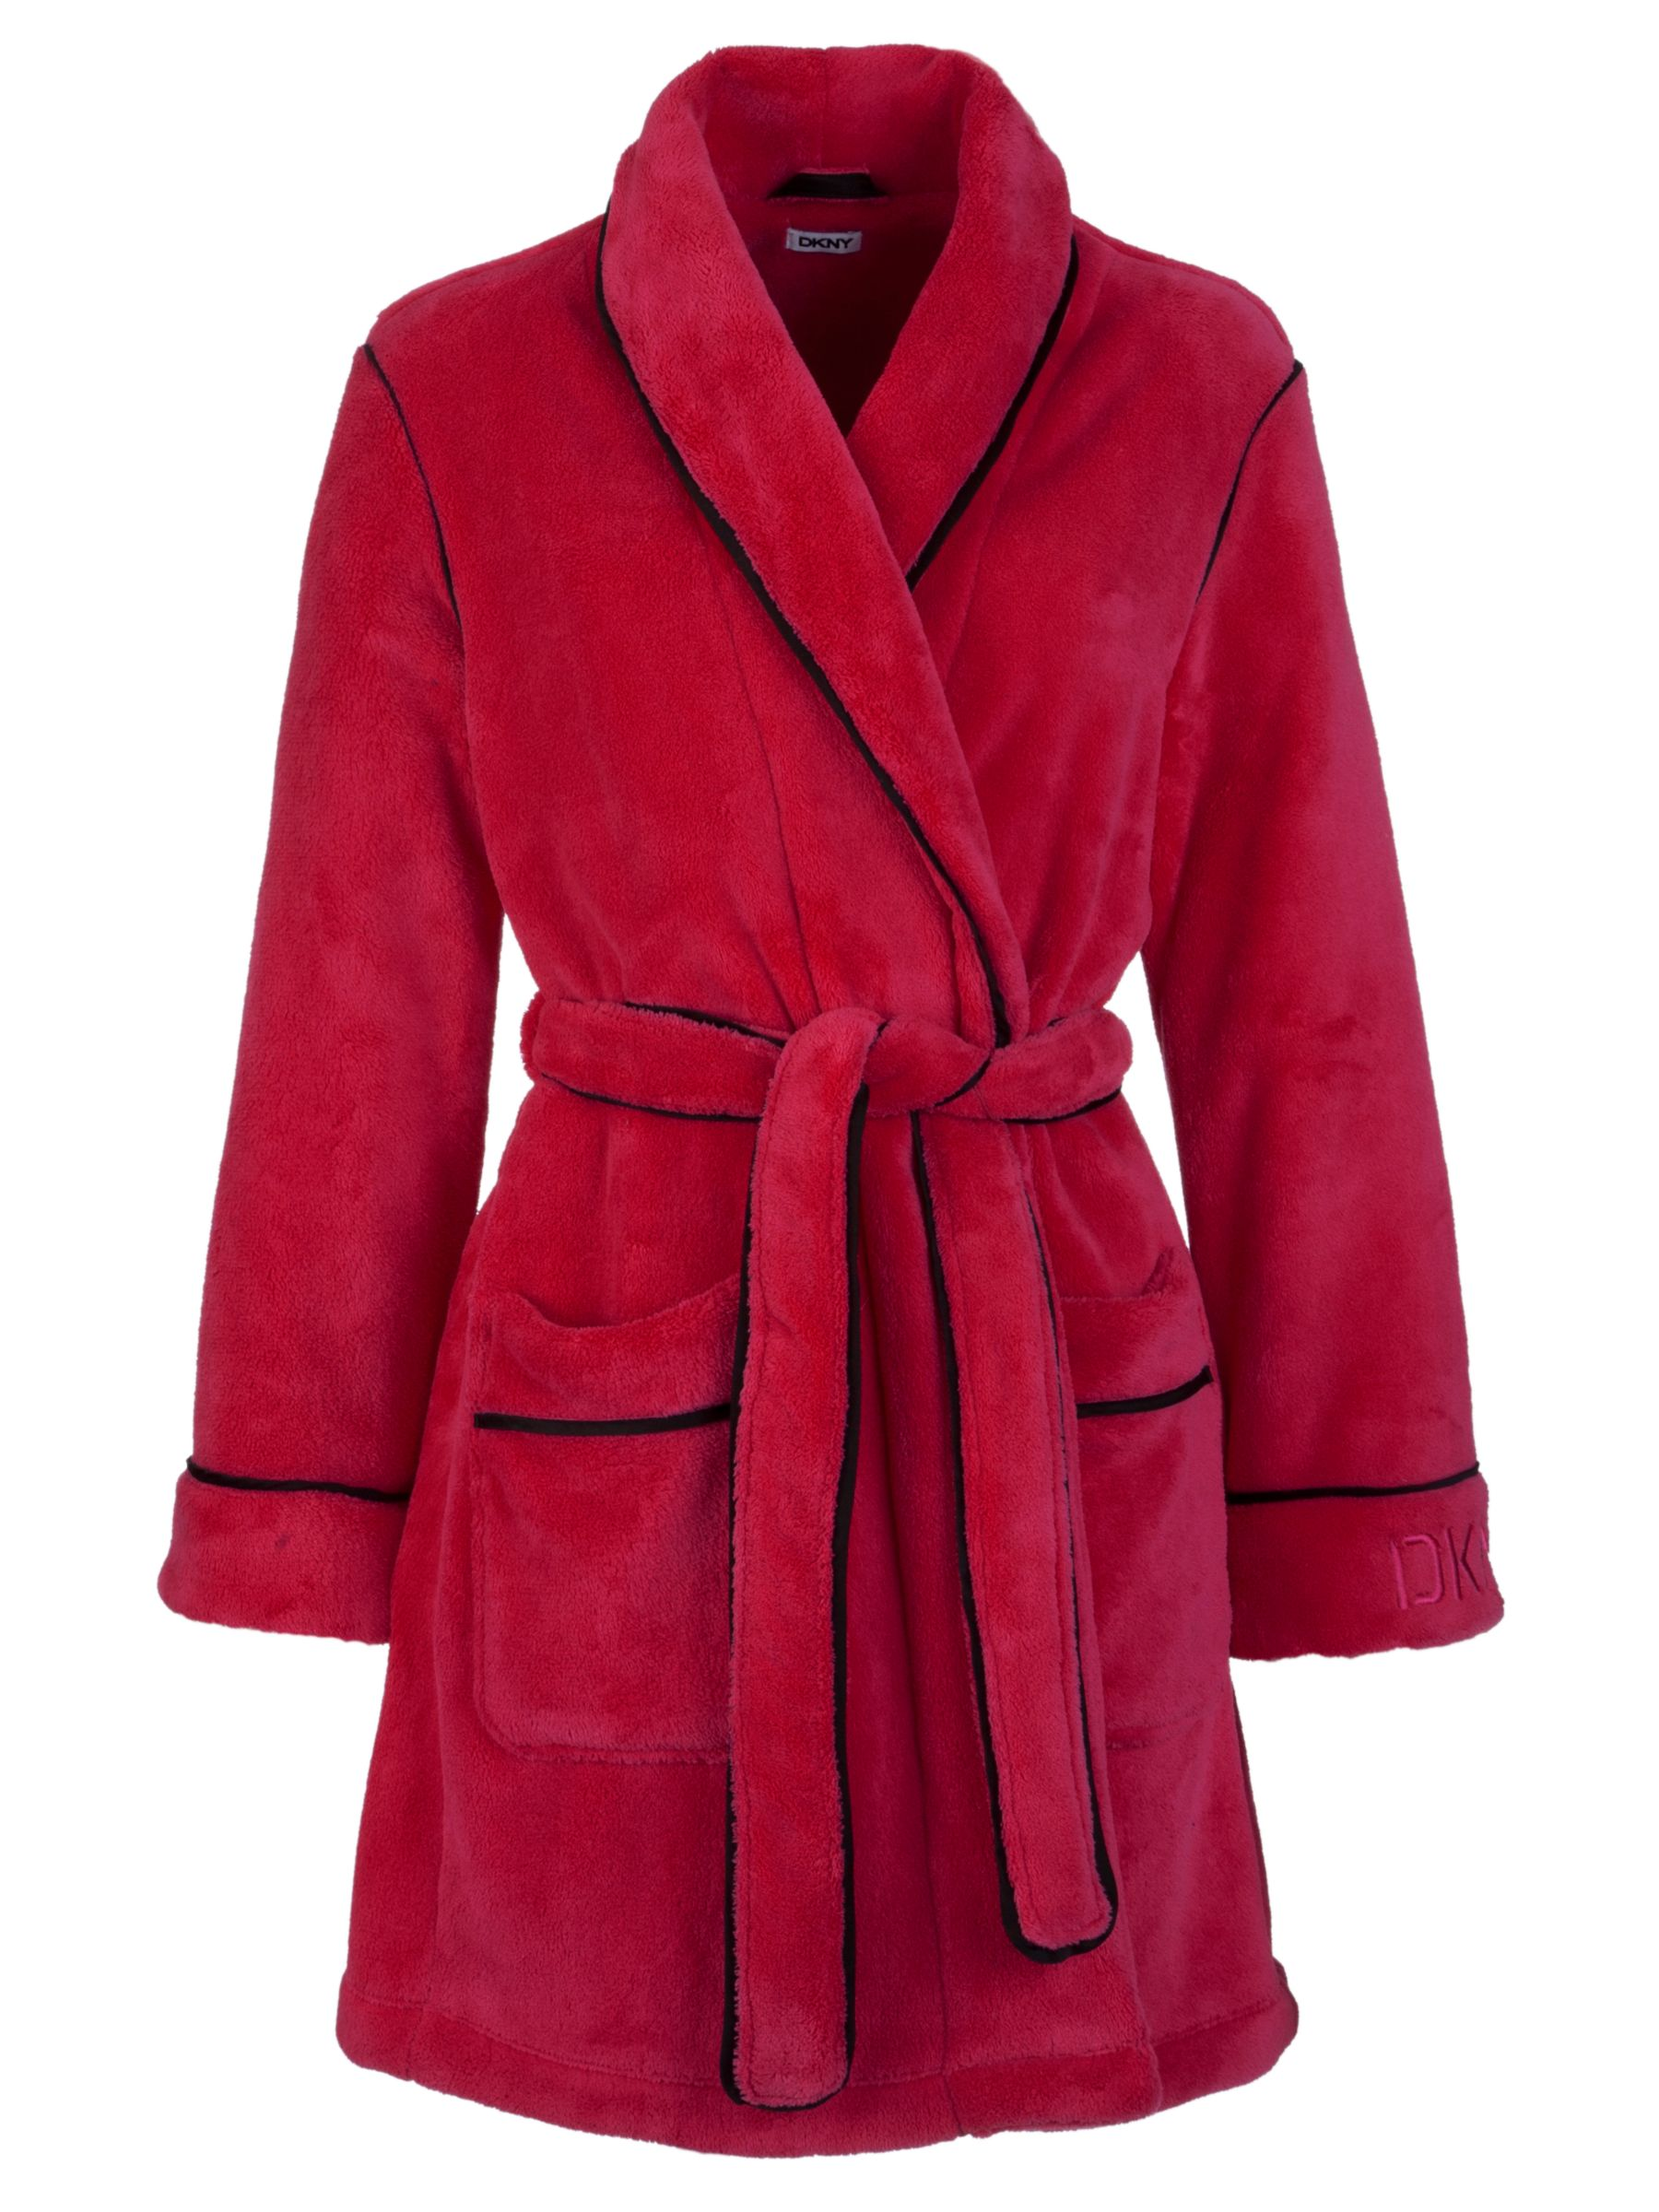 DKNY Fleece Robe, Pink